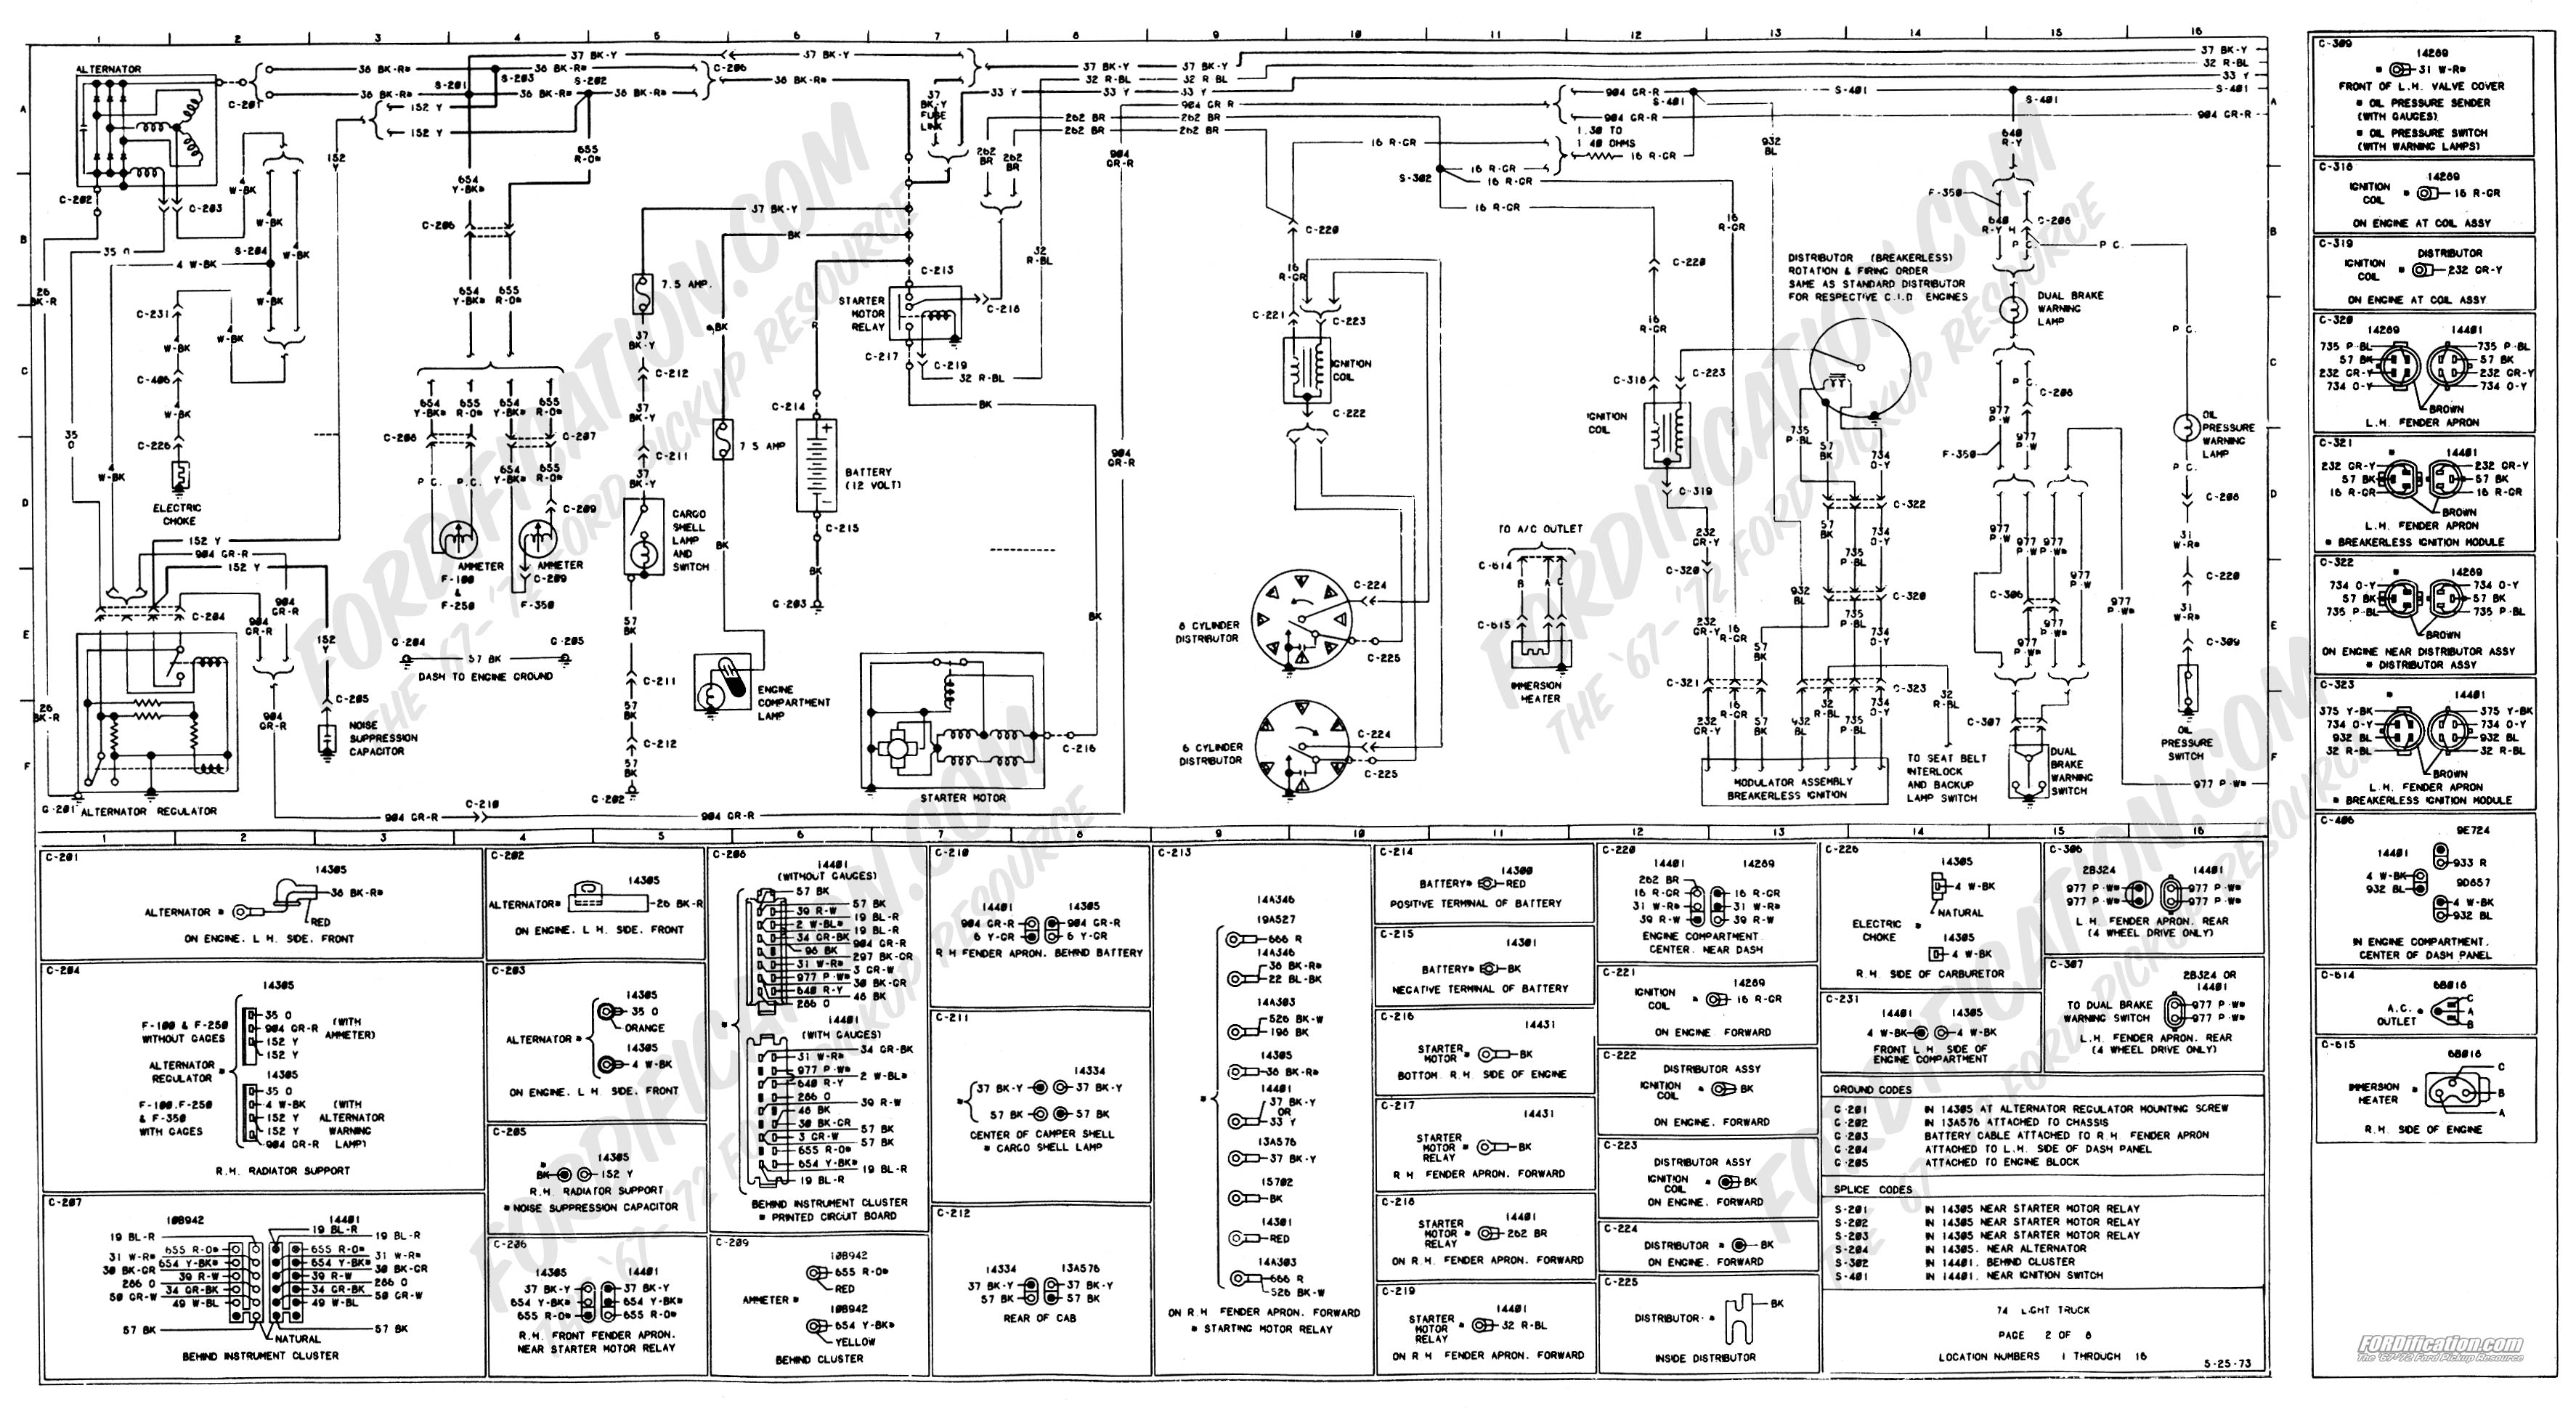 Ford E 350 Step Van Fuse Diagram Wiring Library. Ford E 350 Step Van Fuse Diagram. Morgan. Morgan Olson Wiring Diagrams 2006 At Scoala.co